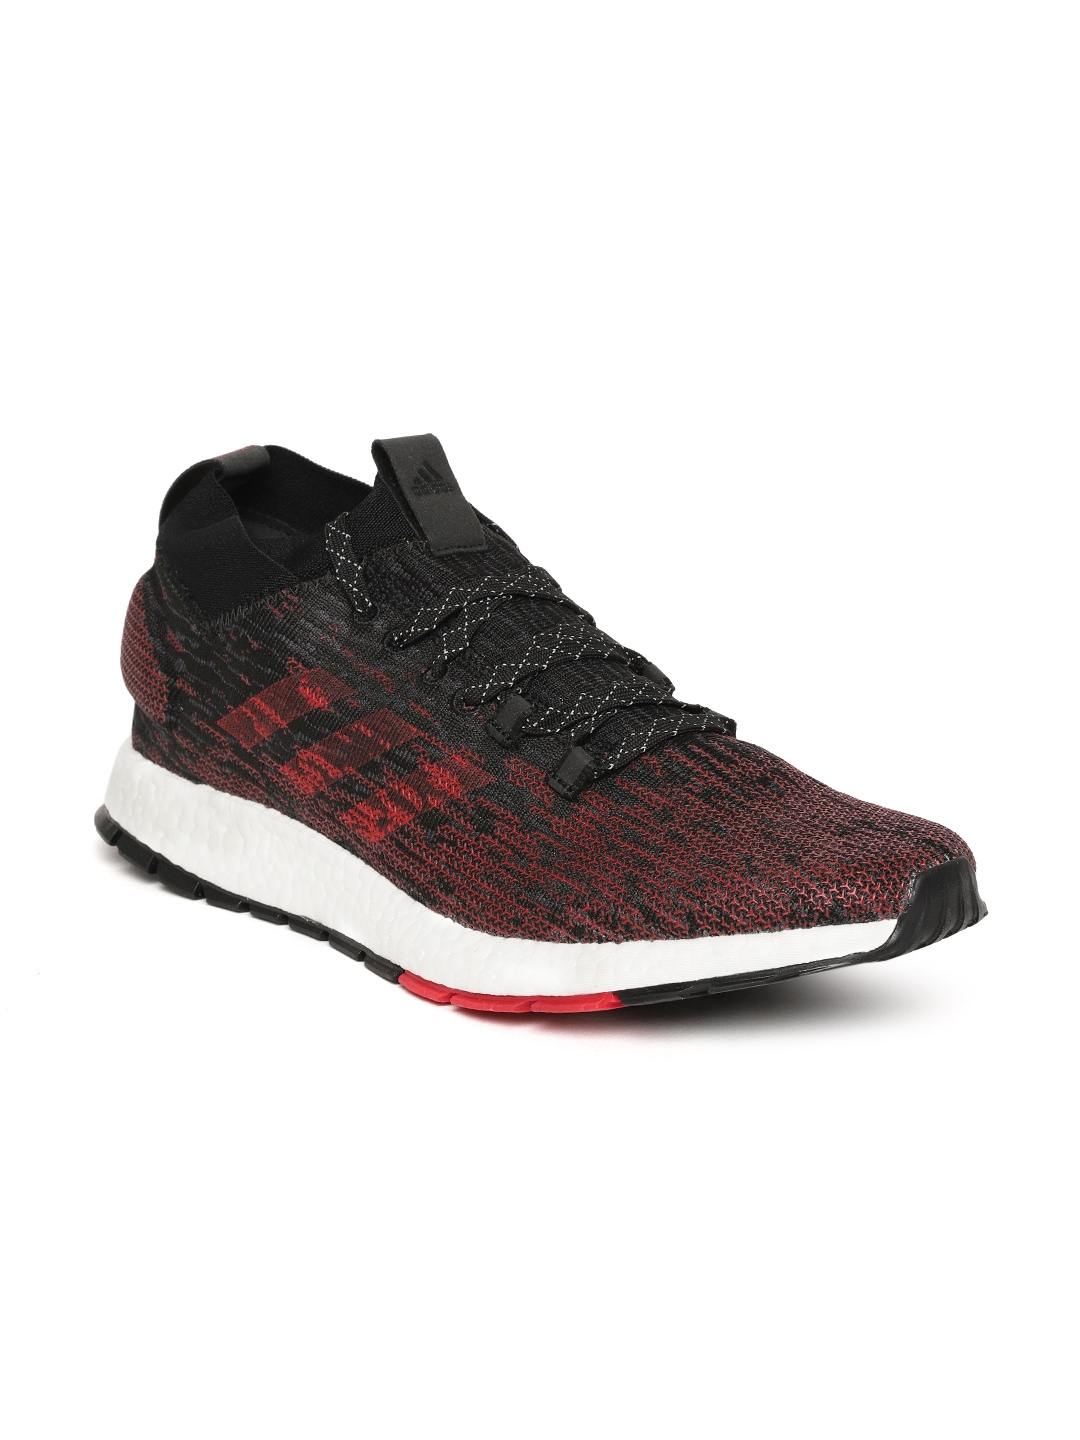 0f9c6f9b5eb Buy ADIDAS Men Red   Black Pureboost RBL Running Shoes - Sports ...